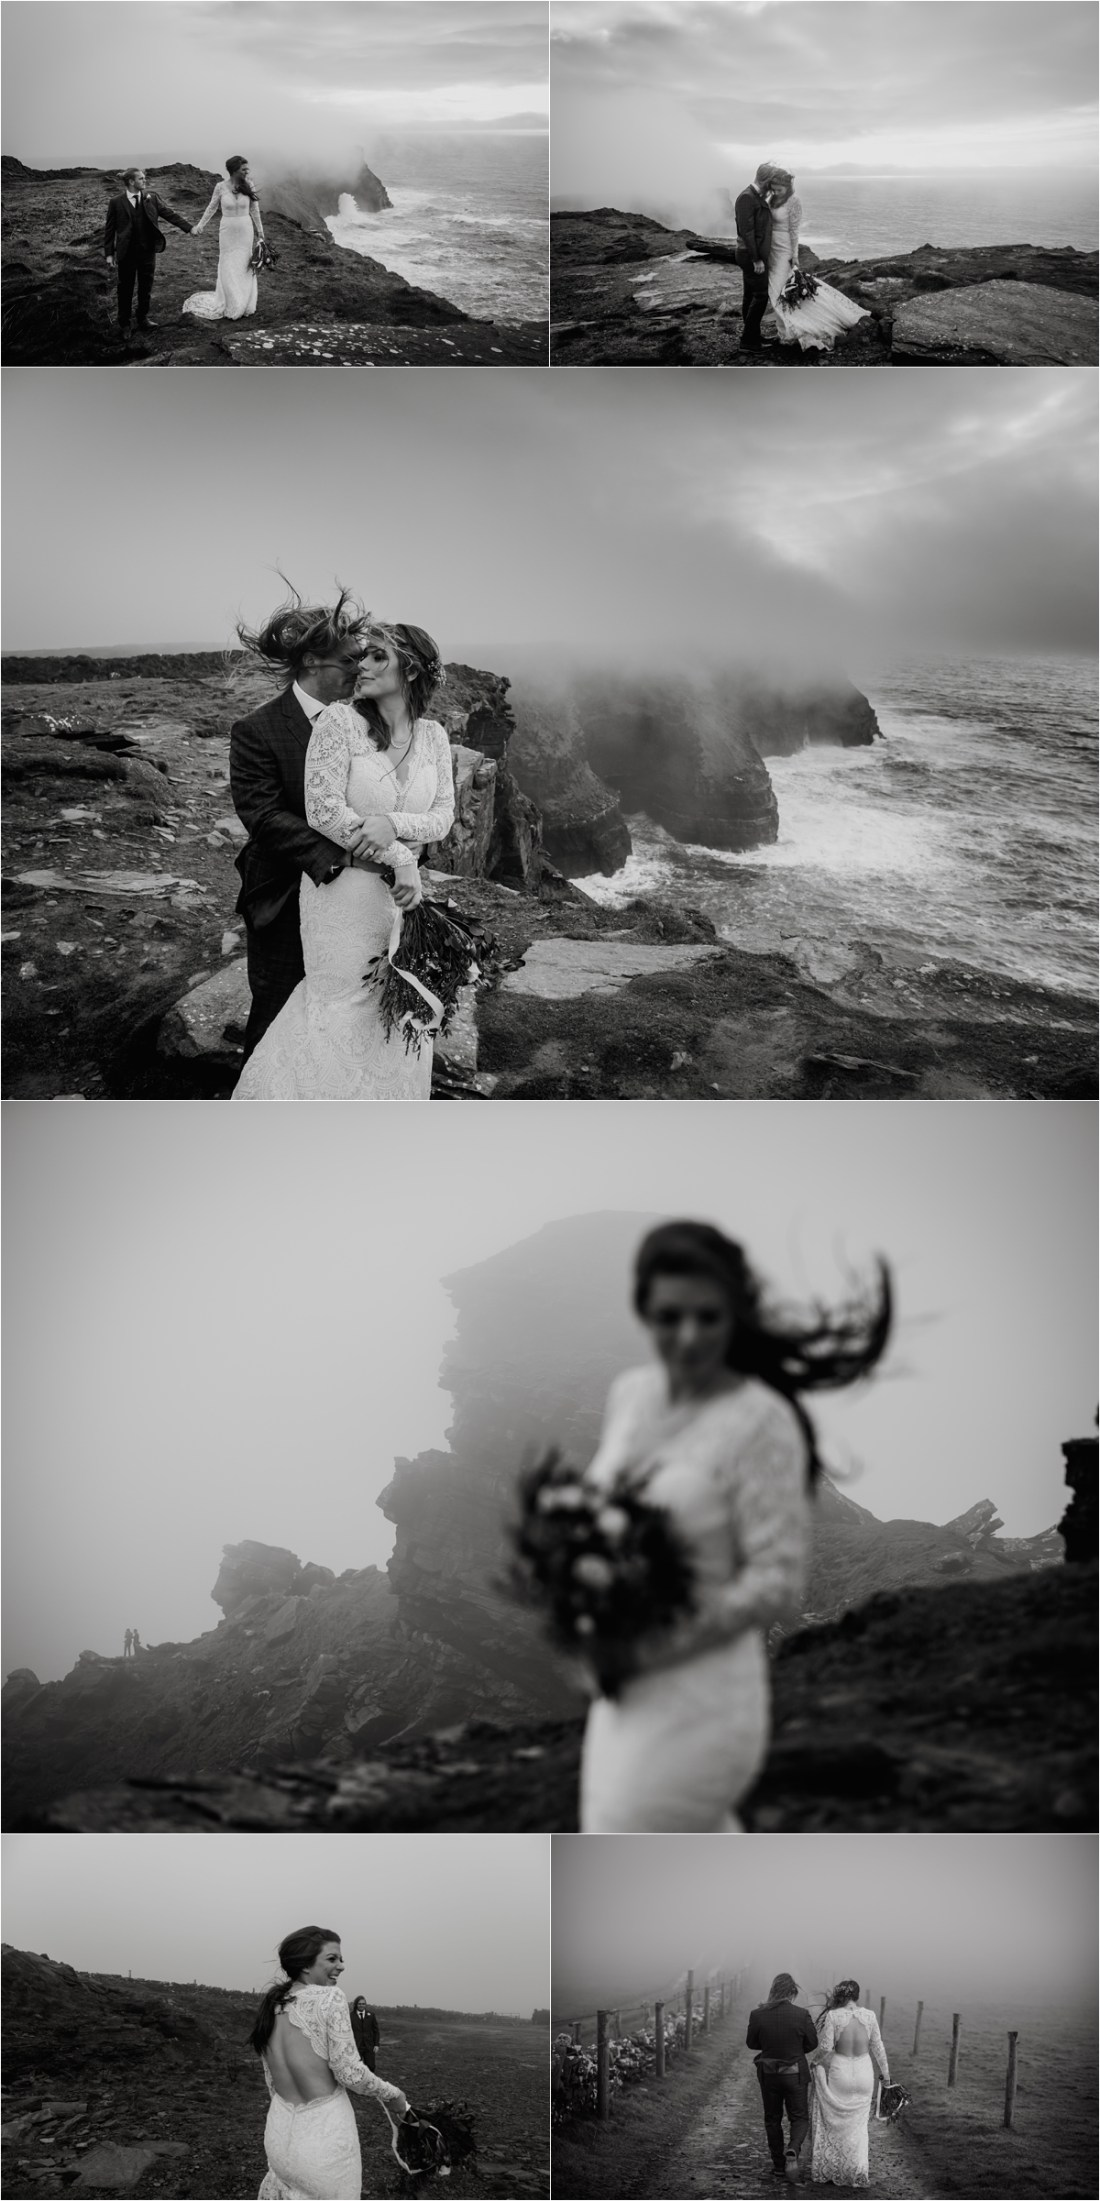 The wild Atlantic winds blow the bride and grooms hair as they embrace at the Cliffs of Moher in Ireland. Photos by Europe Elopement Photographer Wild Connections Photography